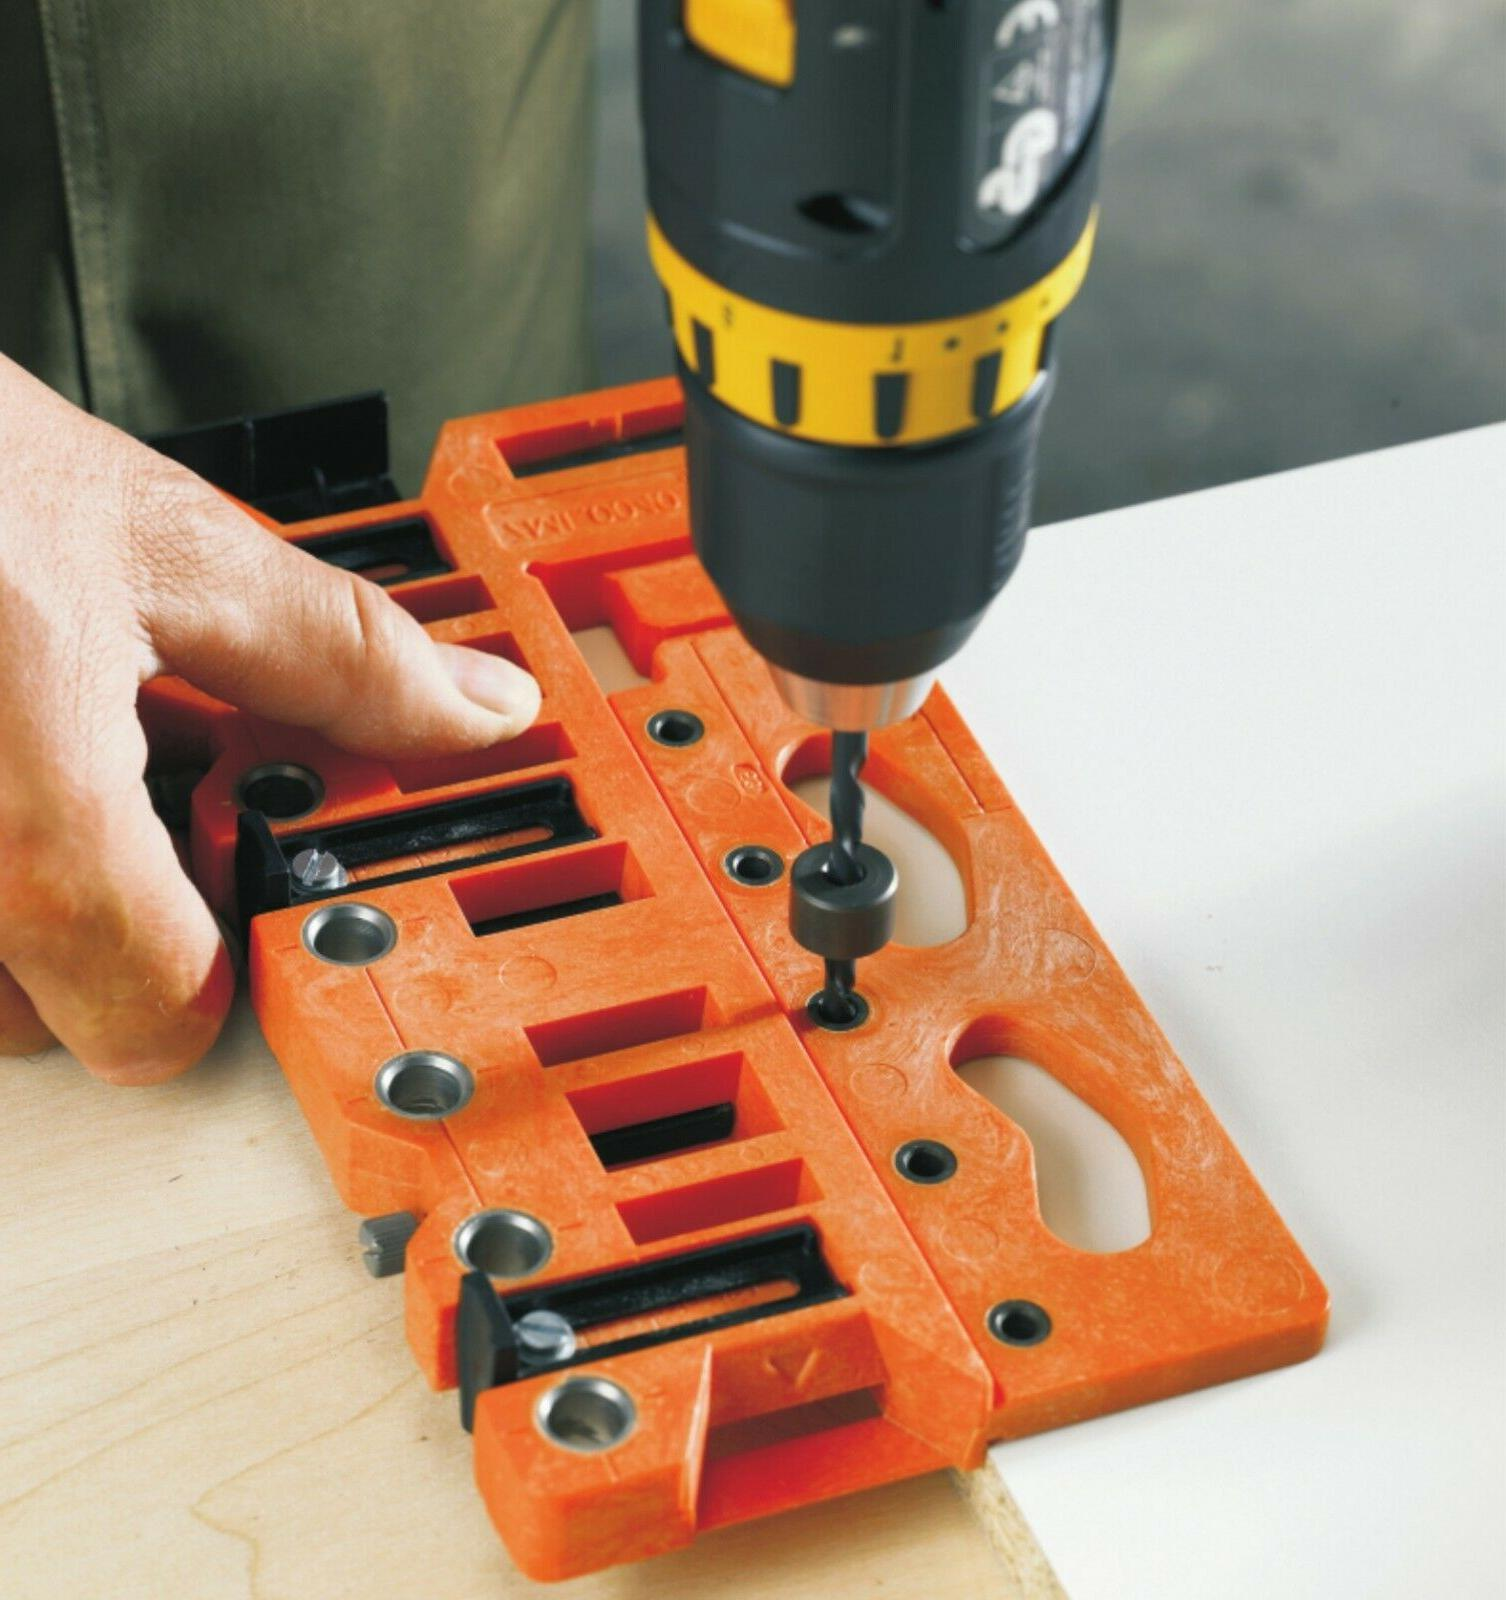 universal cabinet metabox drawer drill guide jig